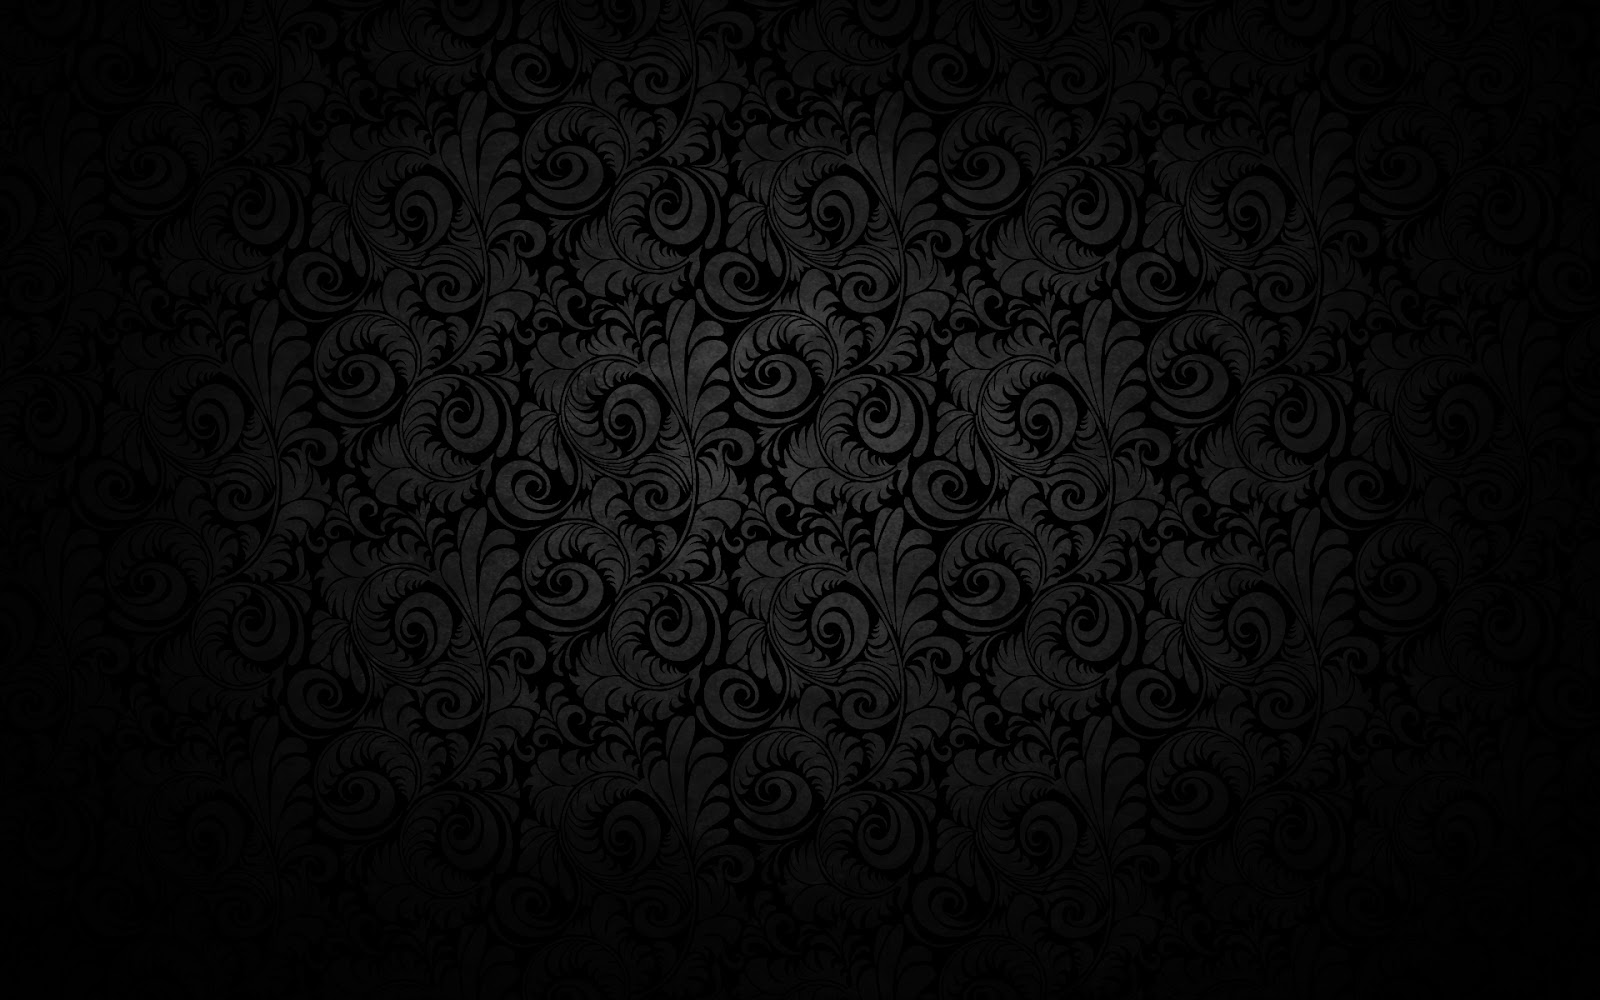 Dark-background-grey-floral-pattern-HD-texture-image-free-download.jpg